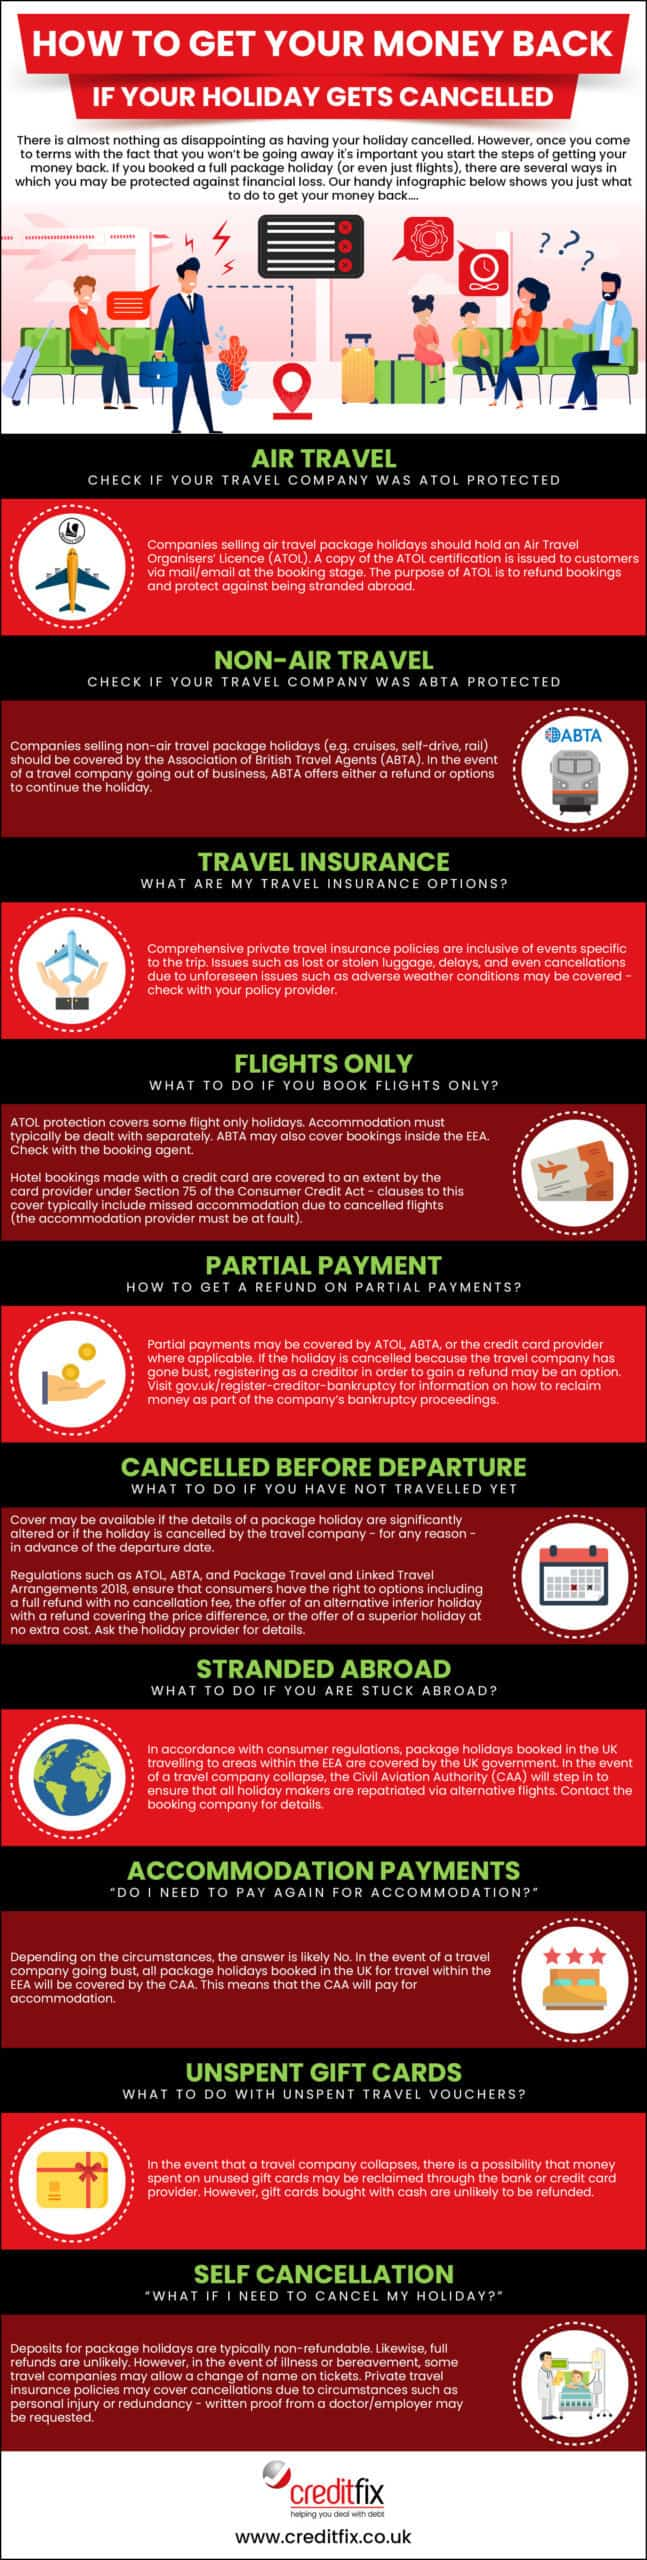 Infographic how to get your money back if your holiday gets cancelled.